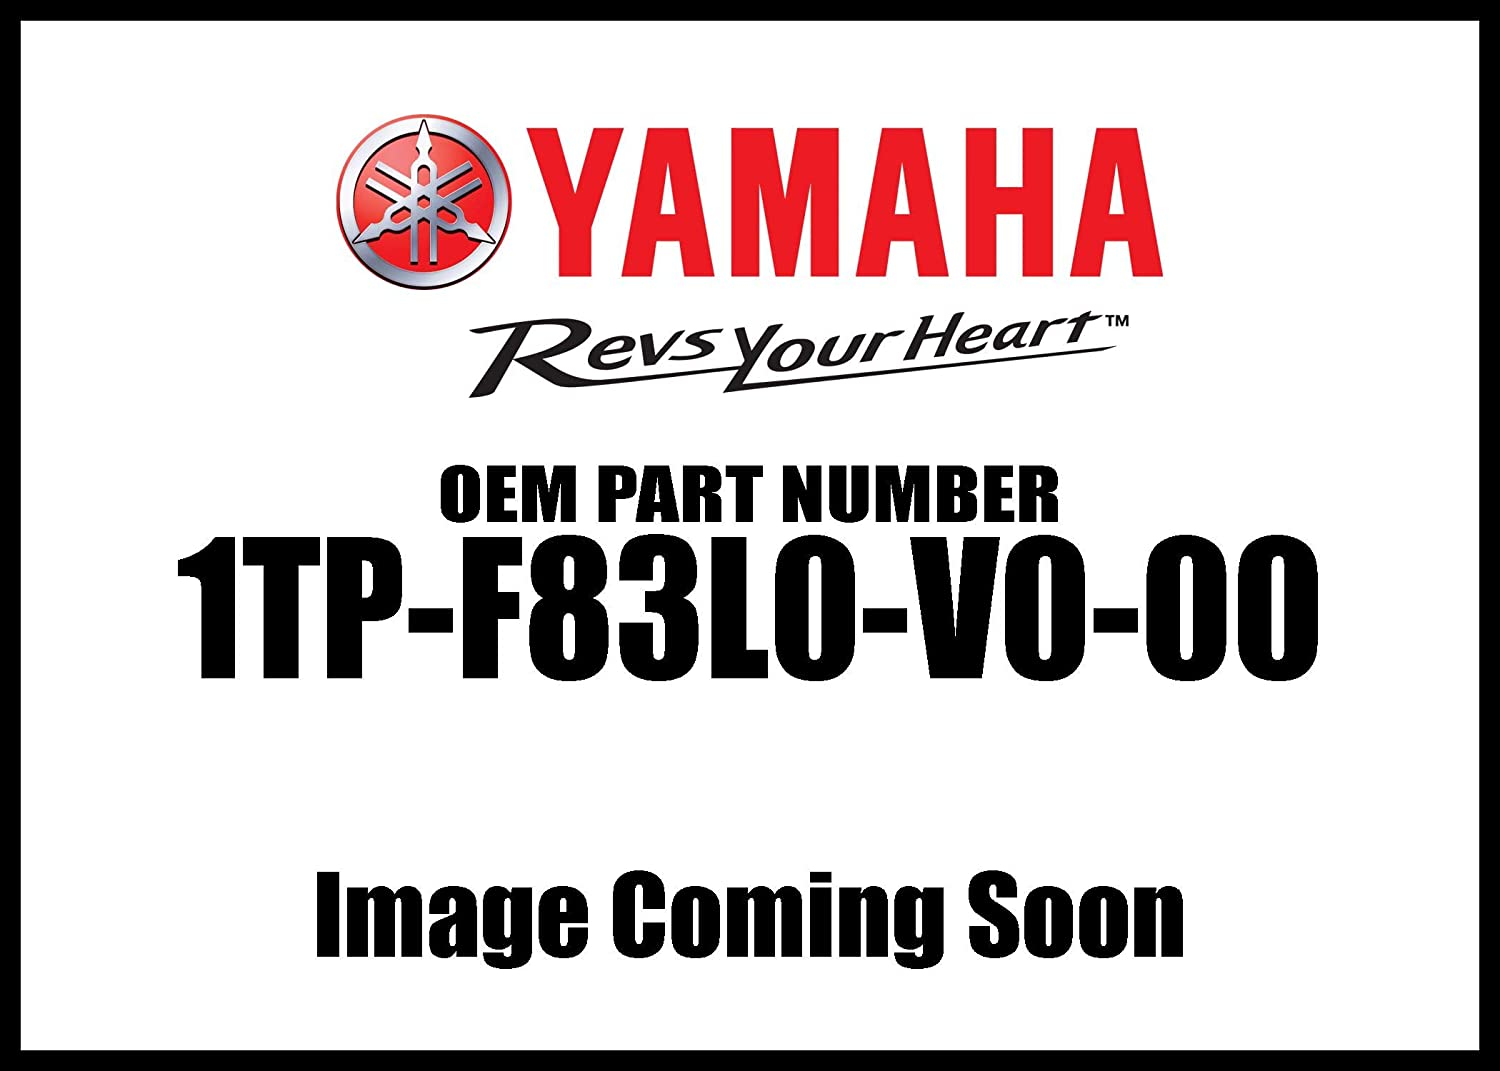 14-19 YAMAHA Bolt-RS Genuine Yamaha Accessories Bolt//SCR Quick Release Windshield Mounts